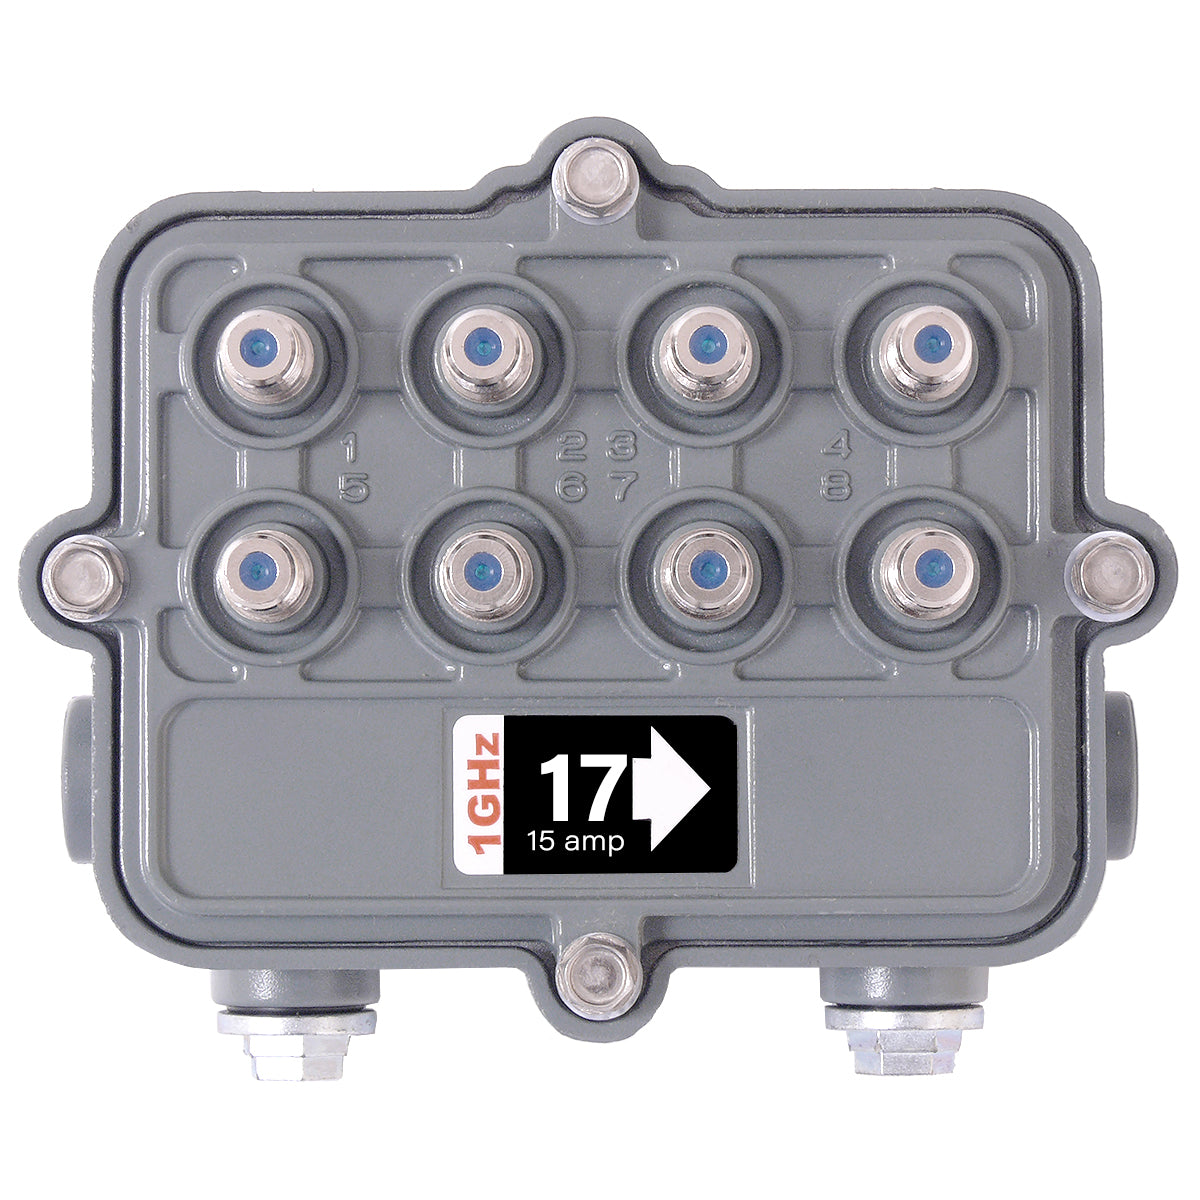 SB-8/17G/SR 1GHz Outdoor Hardline Multitap 8 Way 17dB